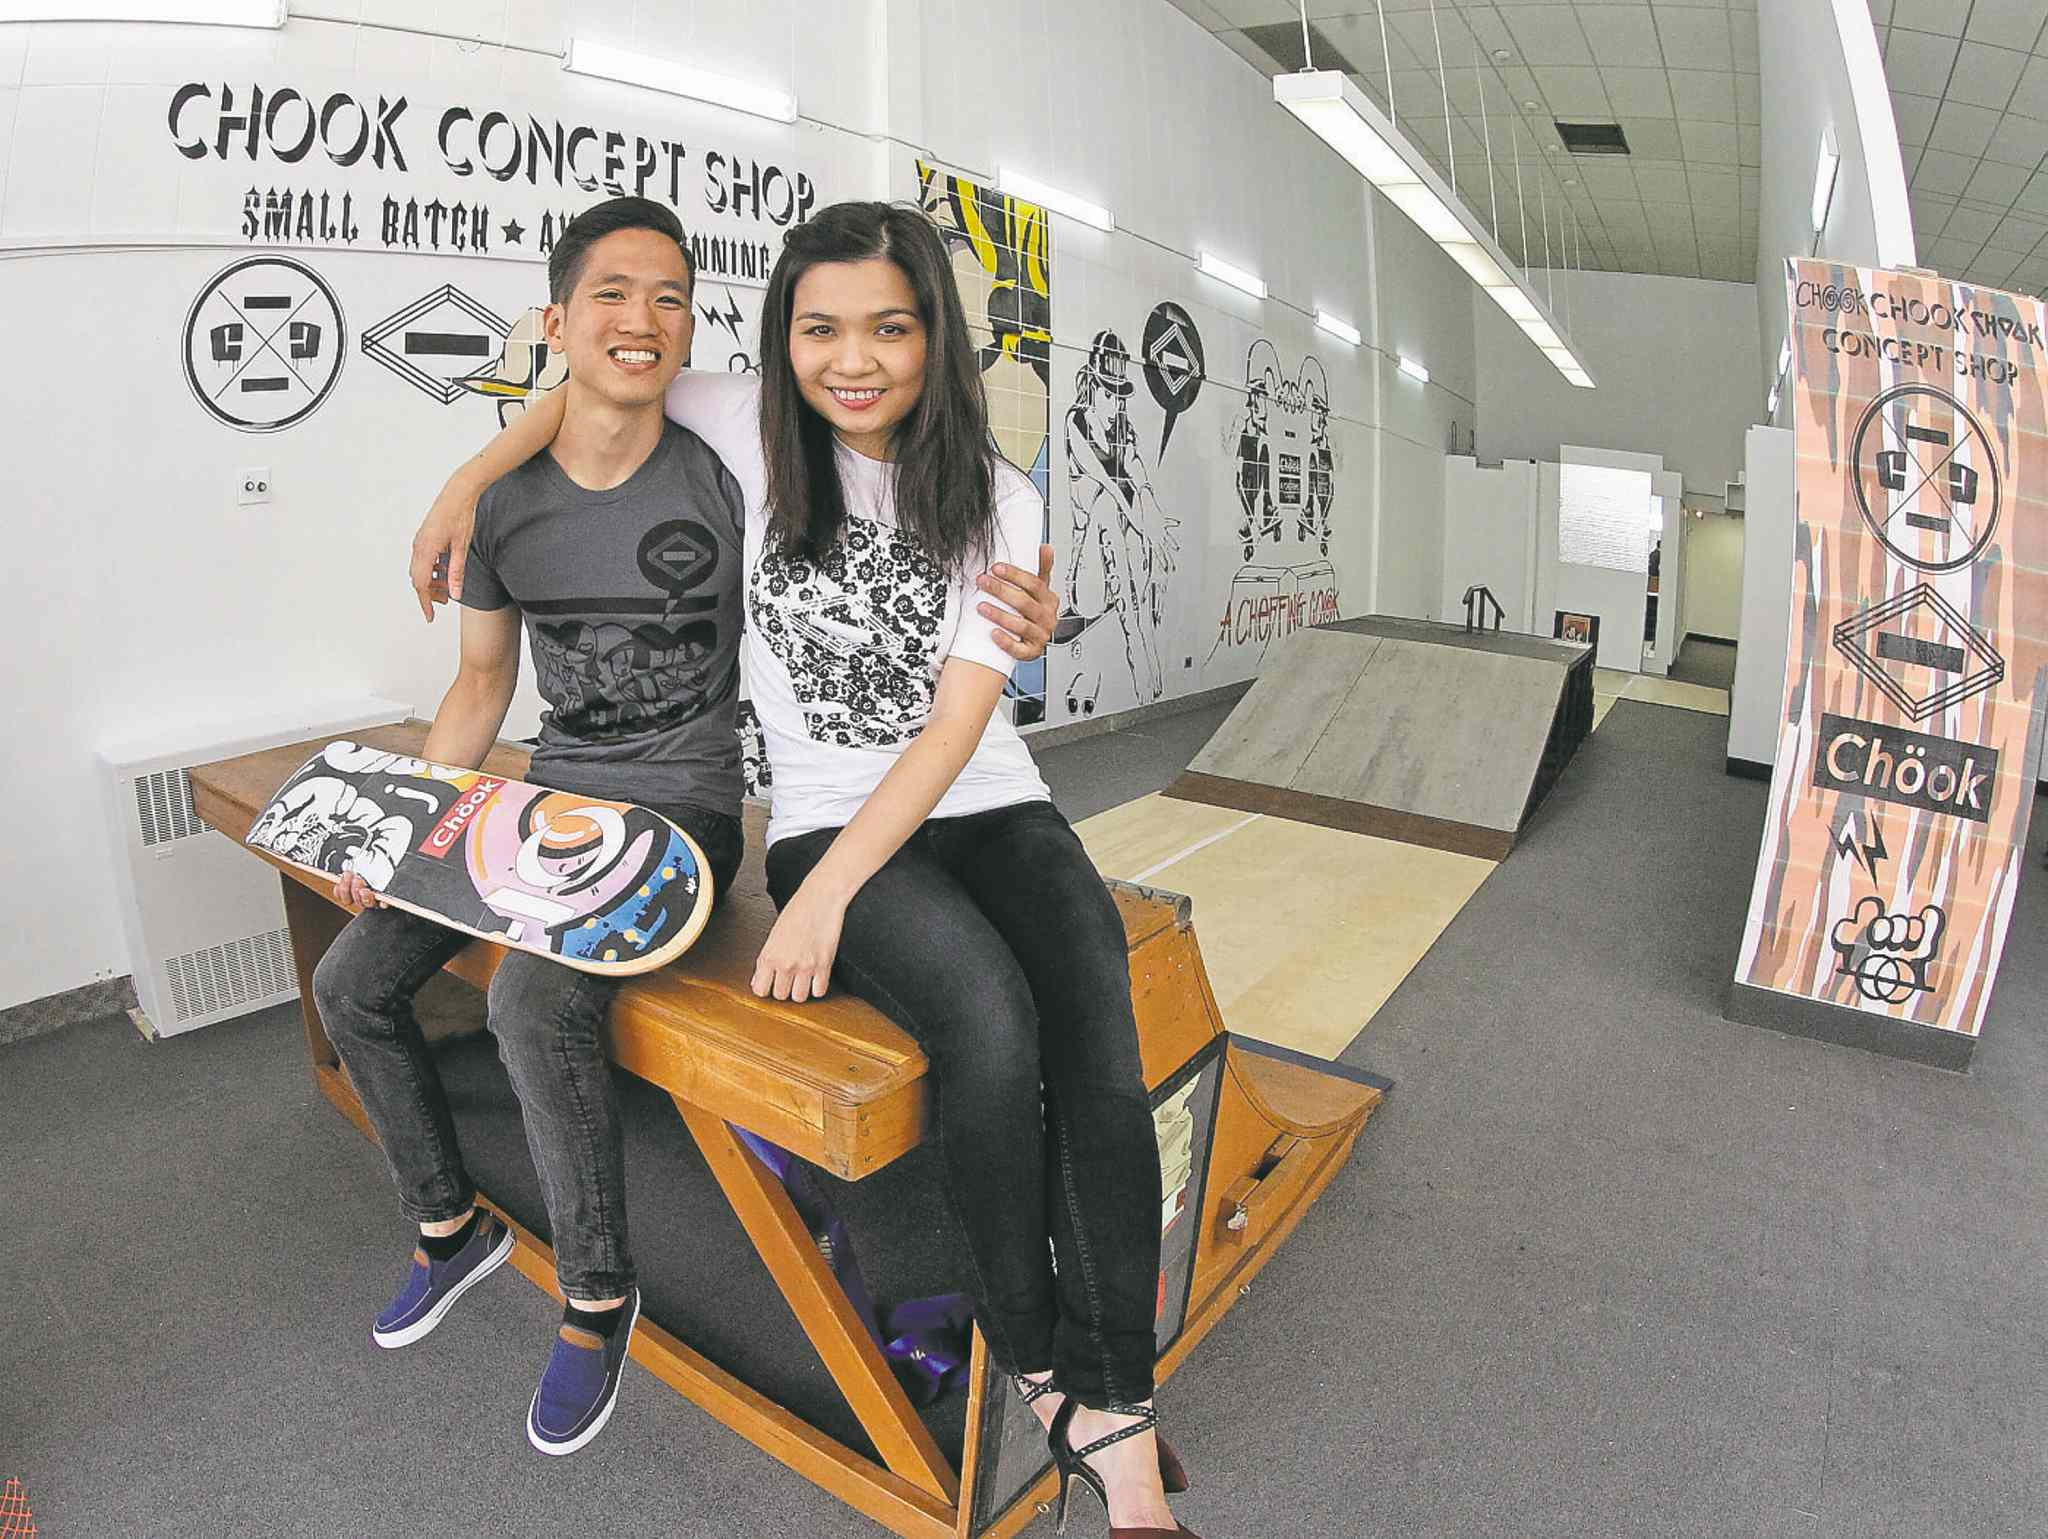 Jonathan Seah and Hannah Chau in their downtown pop-up store called Chook Clothing Co.